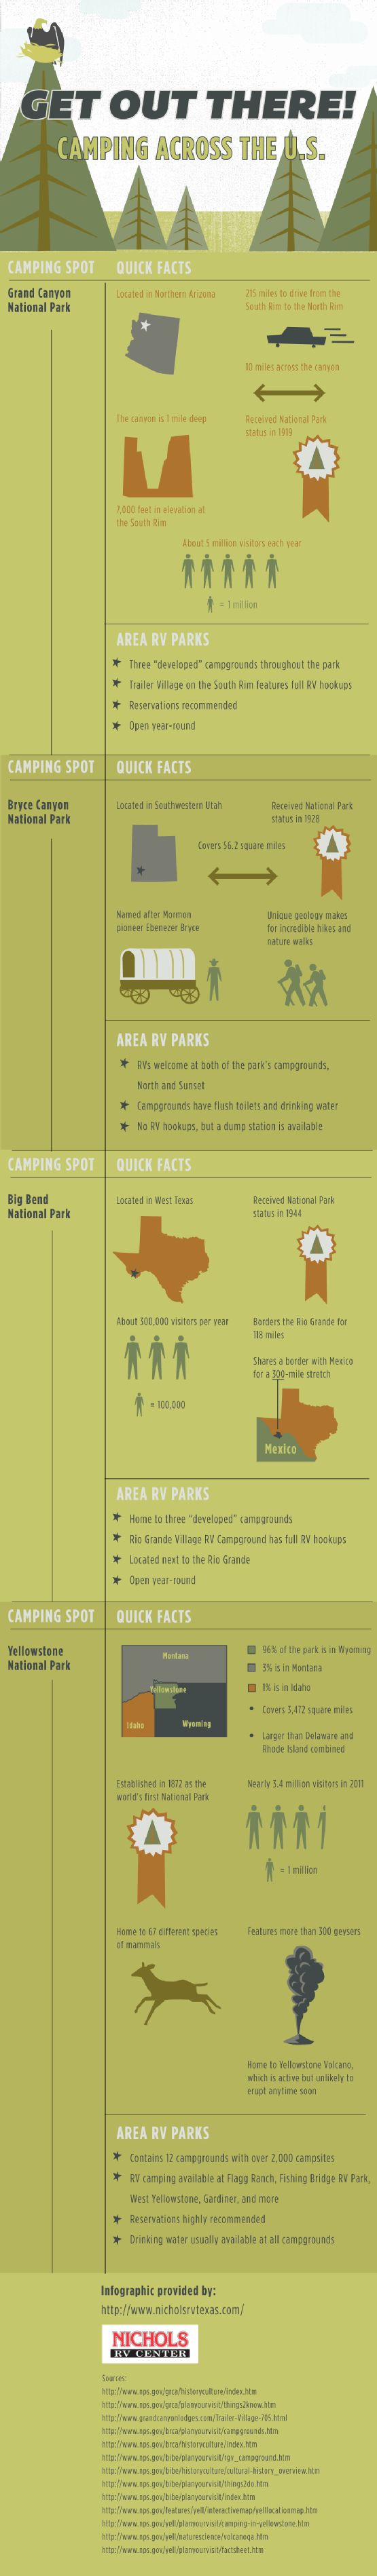 17 Best images about Camping Infographics on Pinterest ...